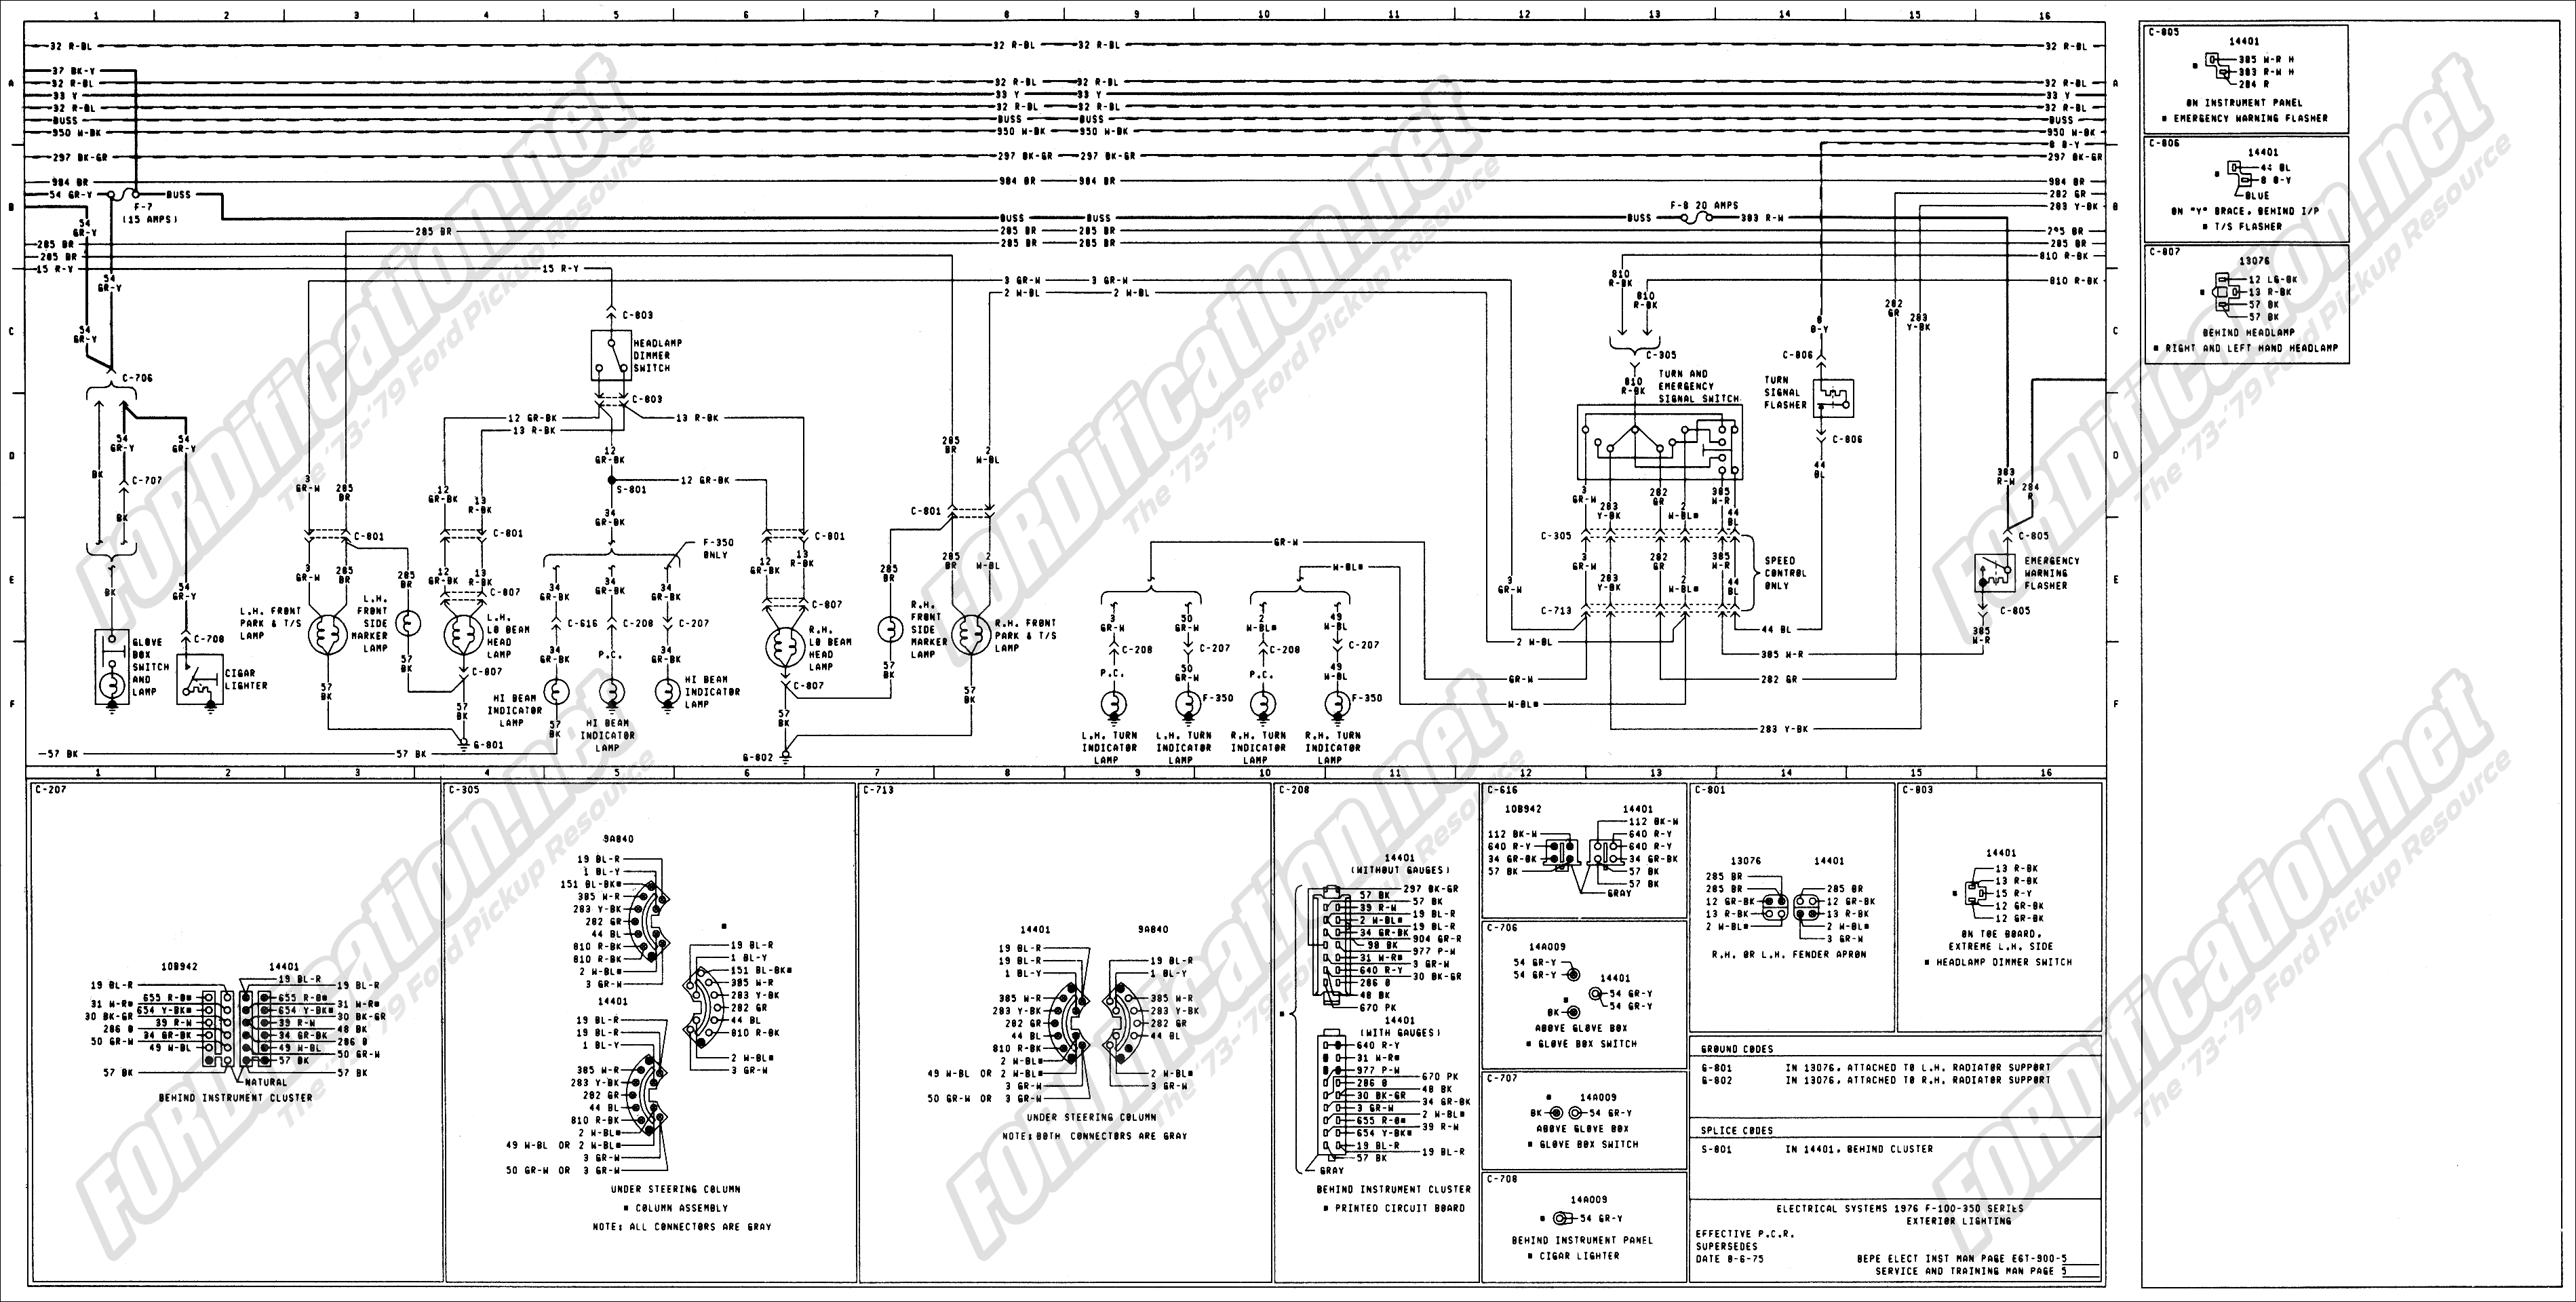 wiring_76master_5of9 1973 1979 ford truck wiring diagrams & schematics fordification net 1975 ford courier wiring diagram at n-0.co